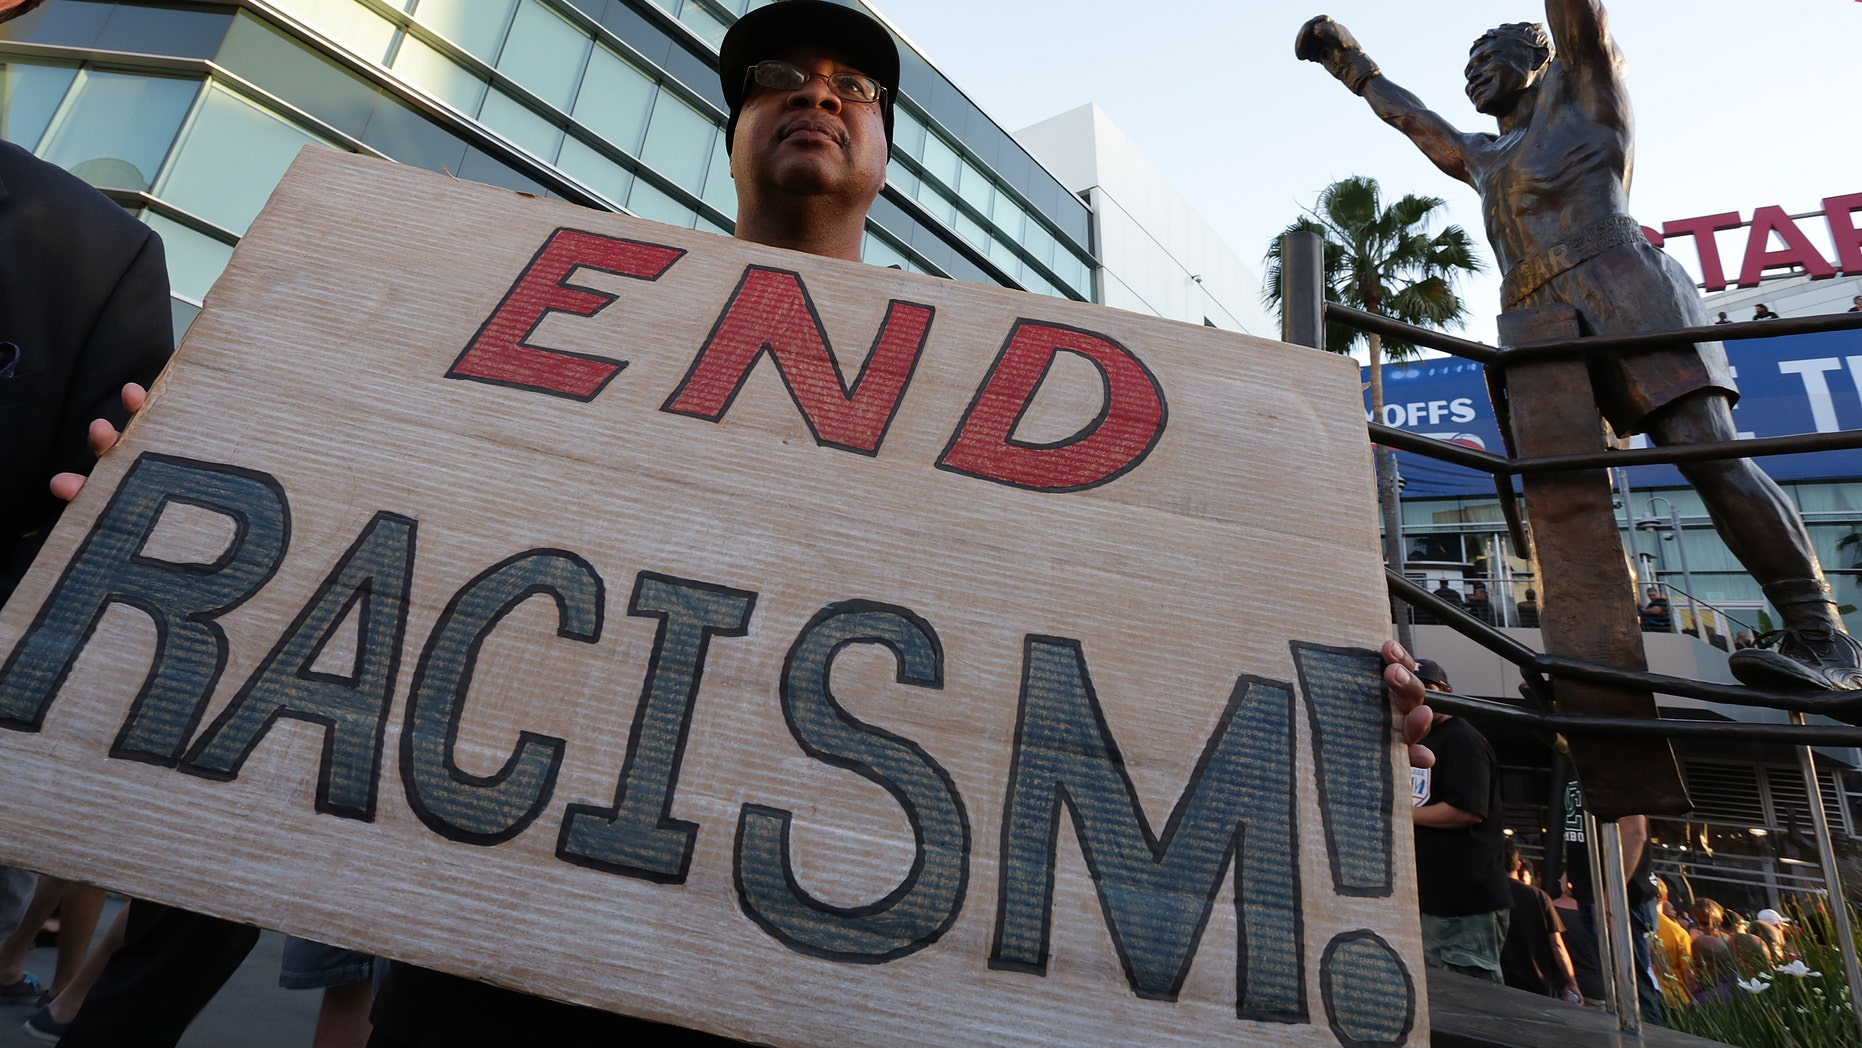 LOS ANGELES, CA -  APRIL 29:   Dexter McLeod holds a sign protesting racist comments made by L.A. Clippers owner Donald Sterling outside Staples Center before a playoff game on April 29, 2014 in Los Angeles, California. Clippers owner Donald Sterling was banned for life today by the NBA and barred from having any association with the team and ordered to pay a $2.5 million fine. (Photo by Jonathan Alcorn/Getty Images)